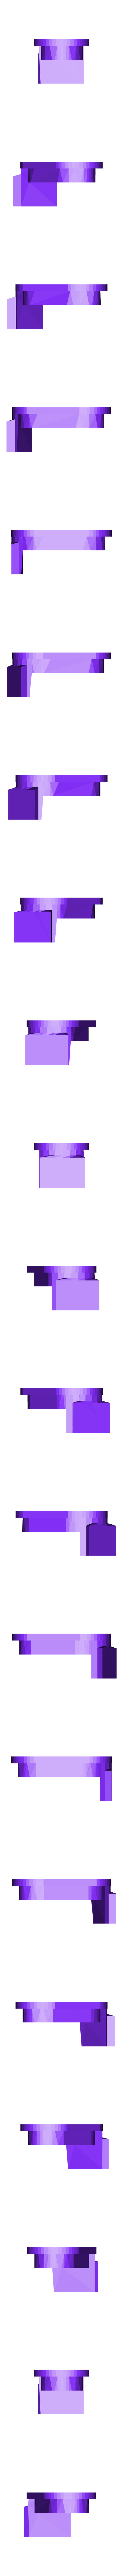 Support_2F.STL Download STL file Square signal Purple • Object to 3D print, dede34500